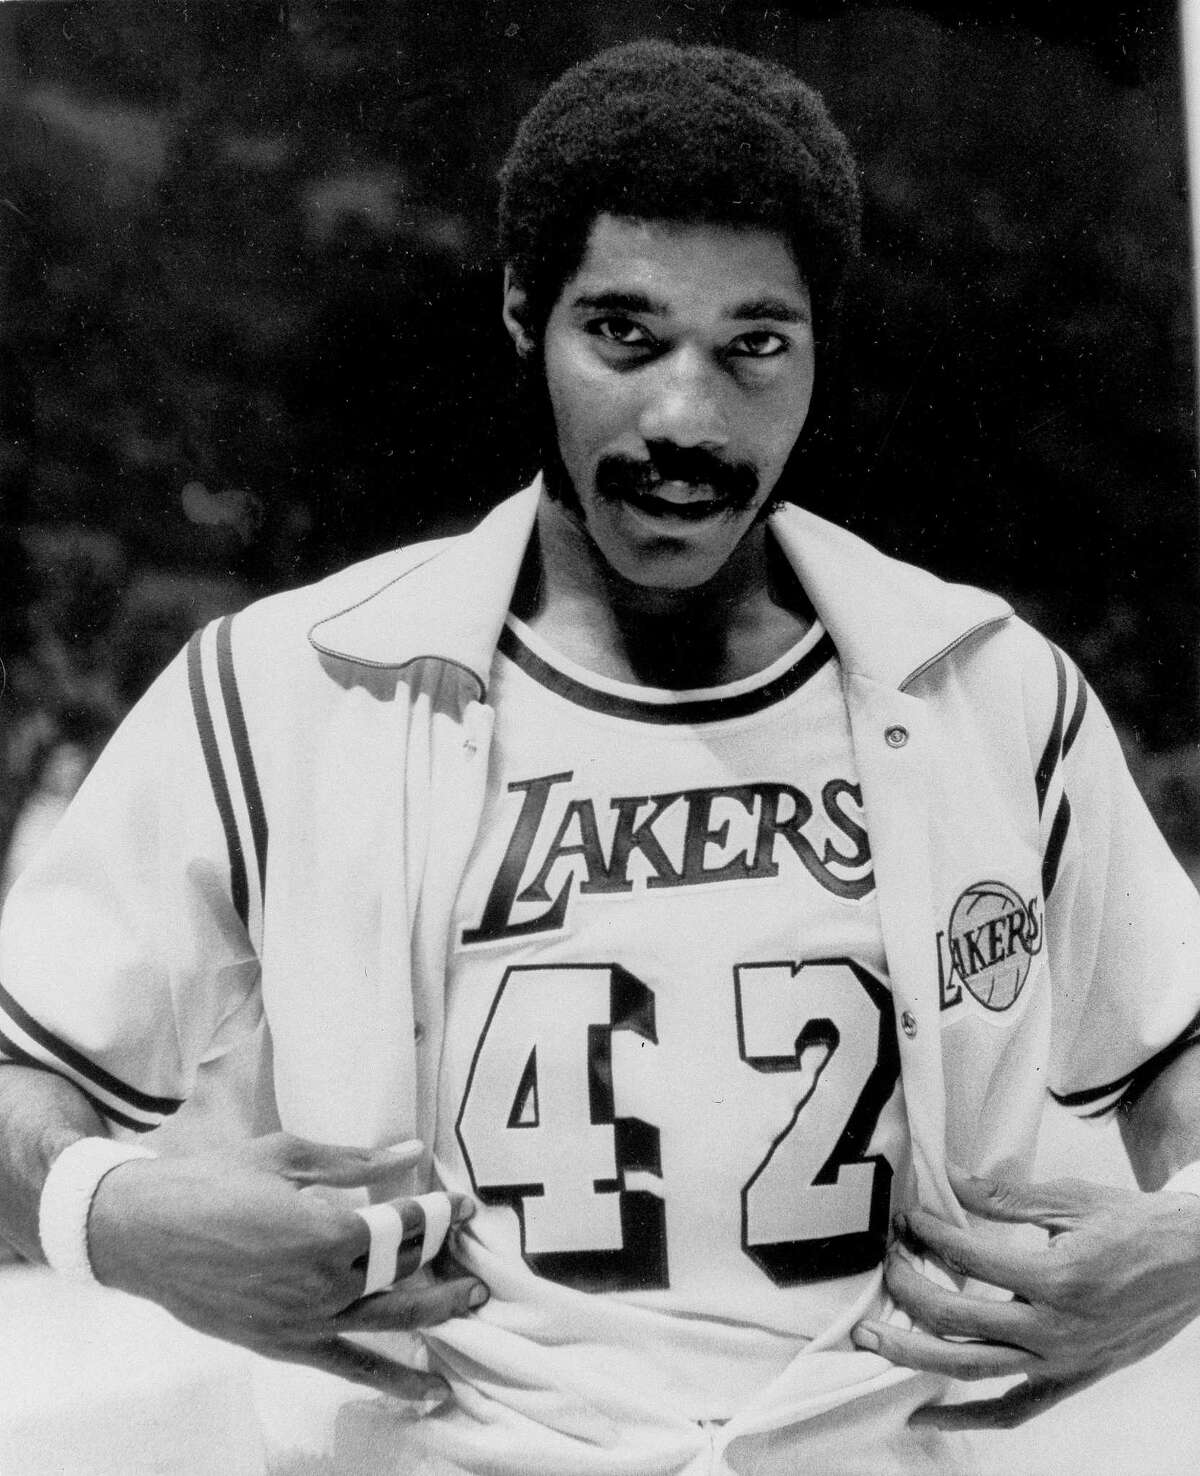 FILE - In this Nov. 2, 1973, file photo, Connie Hawkins shows off his new Los Angeles Lakers uniform before start of game against the New York Knicks in Inglewood, Calif. Basketball great Connie Hawkins has died at 75. The Hall of Famer's death was announced in a statement Saturday, Oct. 7, 2017, by the Phoenix Suns, the team with which he spent his most productive NBA seasons. The Suns told The Associated Press they confirmed the death with his family. The 6-foot-8 Hawkins was a dazzling playground legend in New York City who rose to basketball's heights. The Suns lauded his